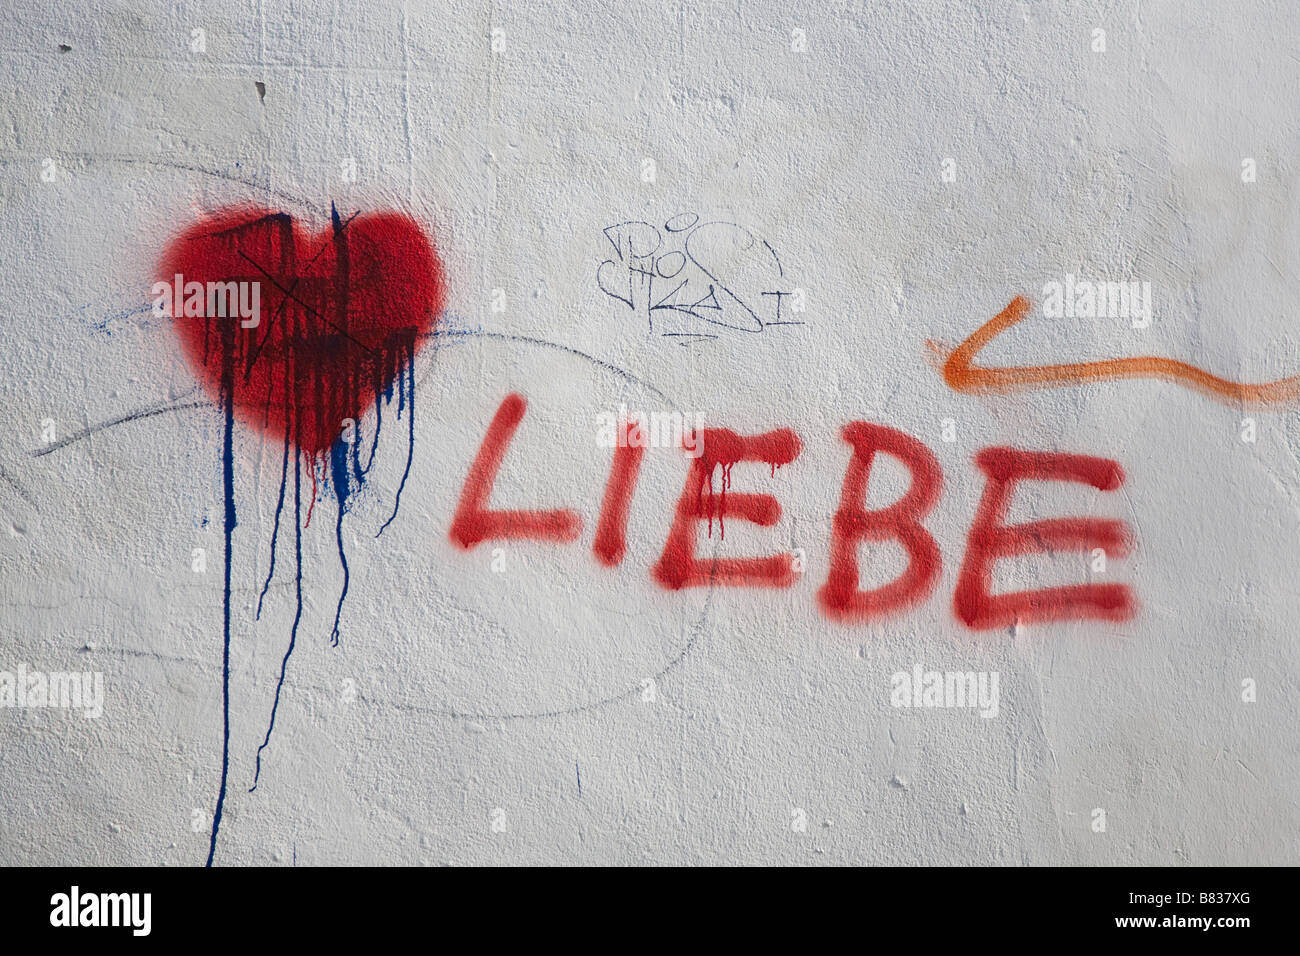 A Reaction To A Heart Sprayed On A Swastika Next To The Heart The German Word For Love Liebe